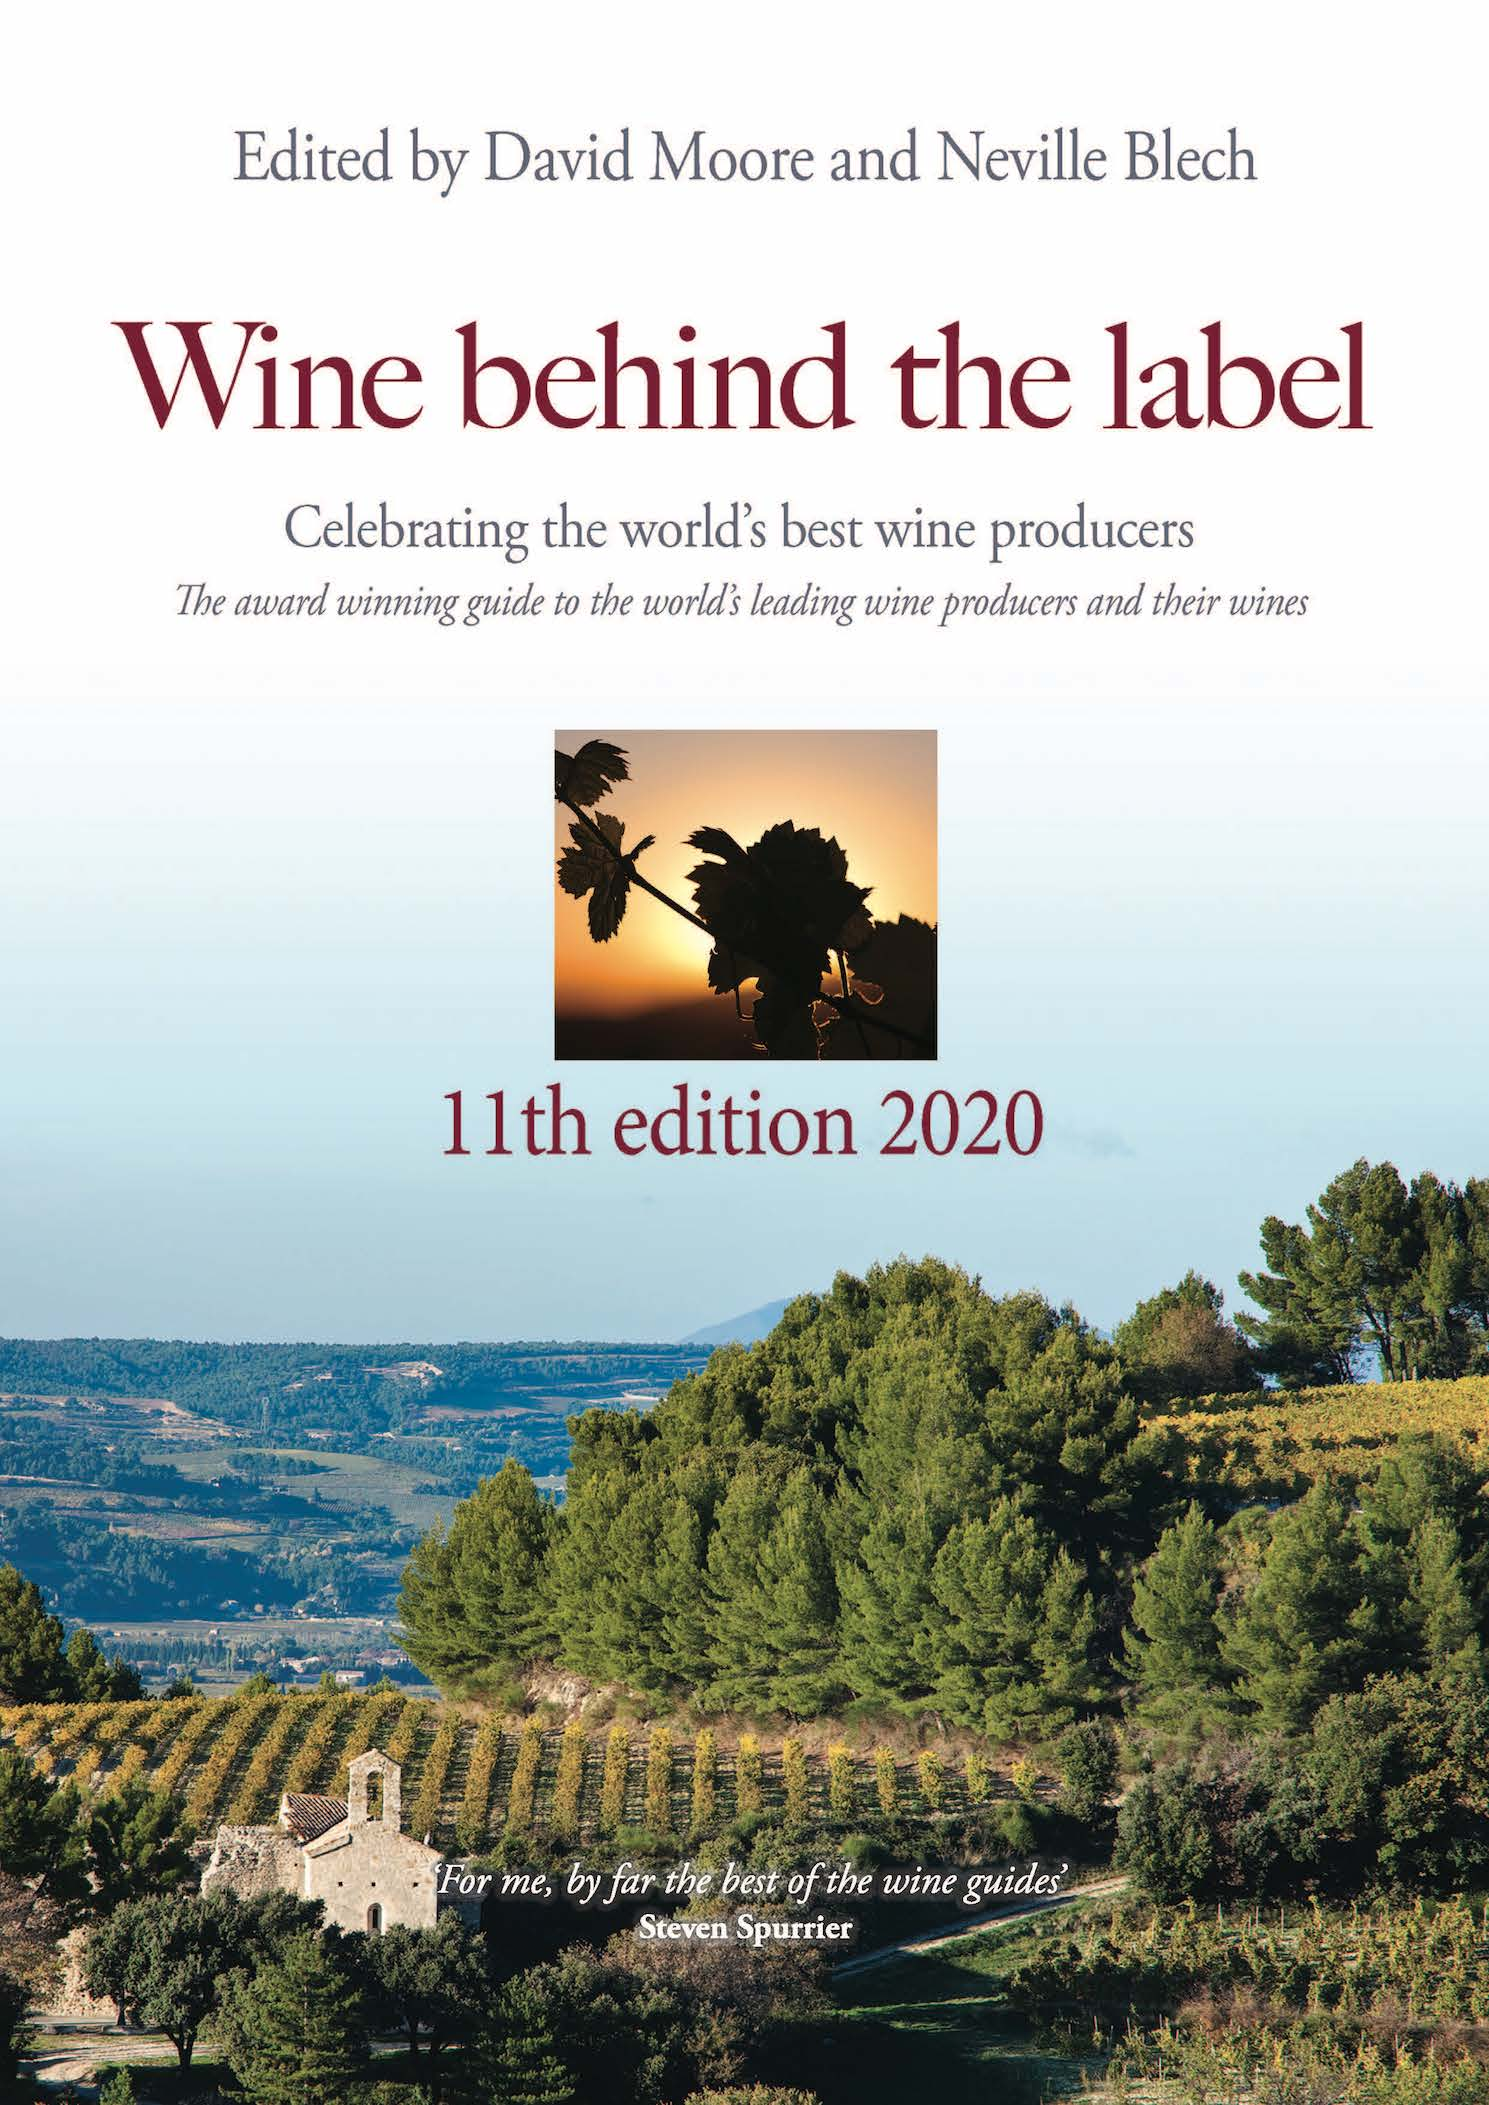 New Wine behind the label 2020 digital edition just published and great seasonal offers